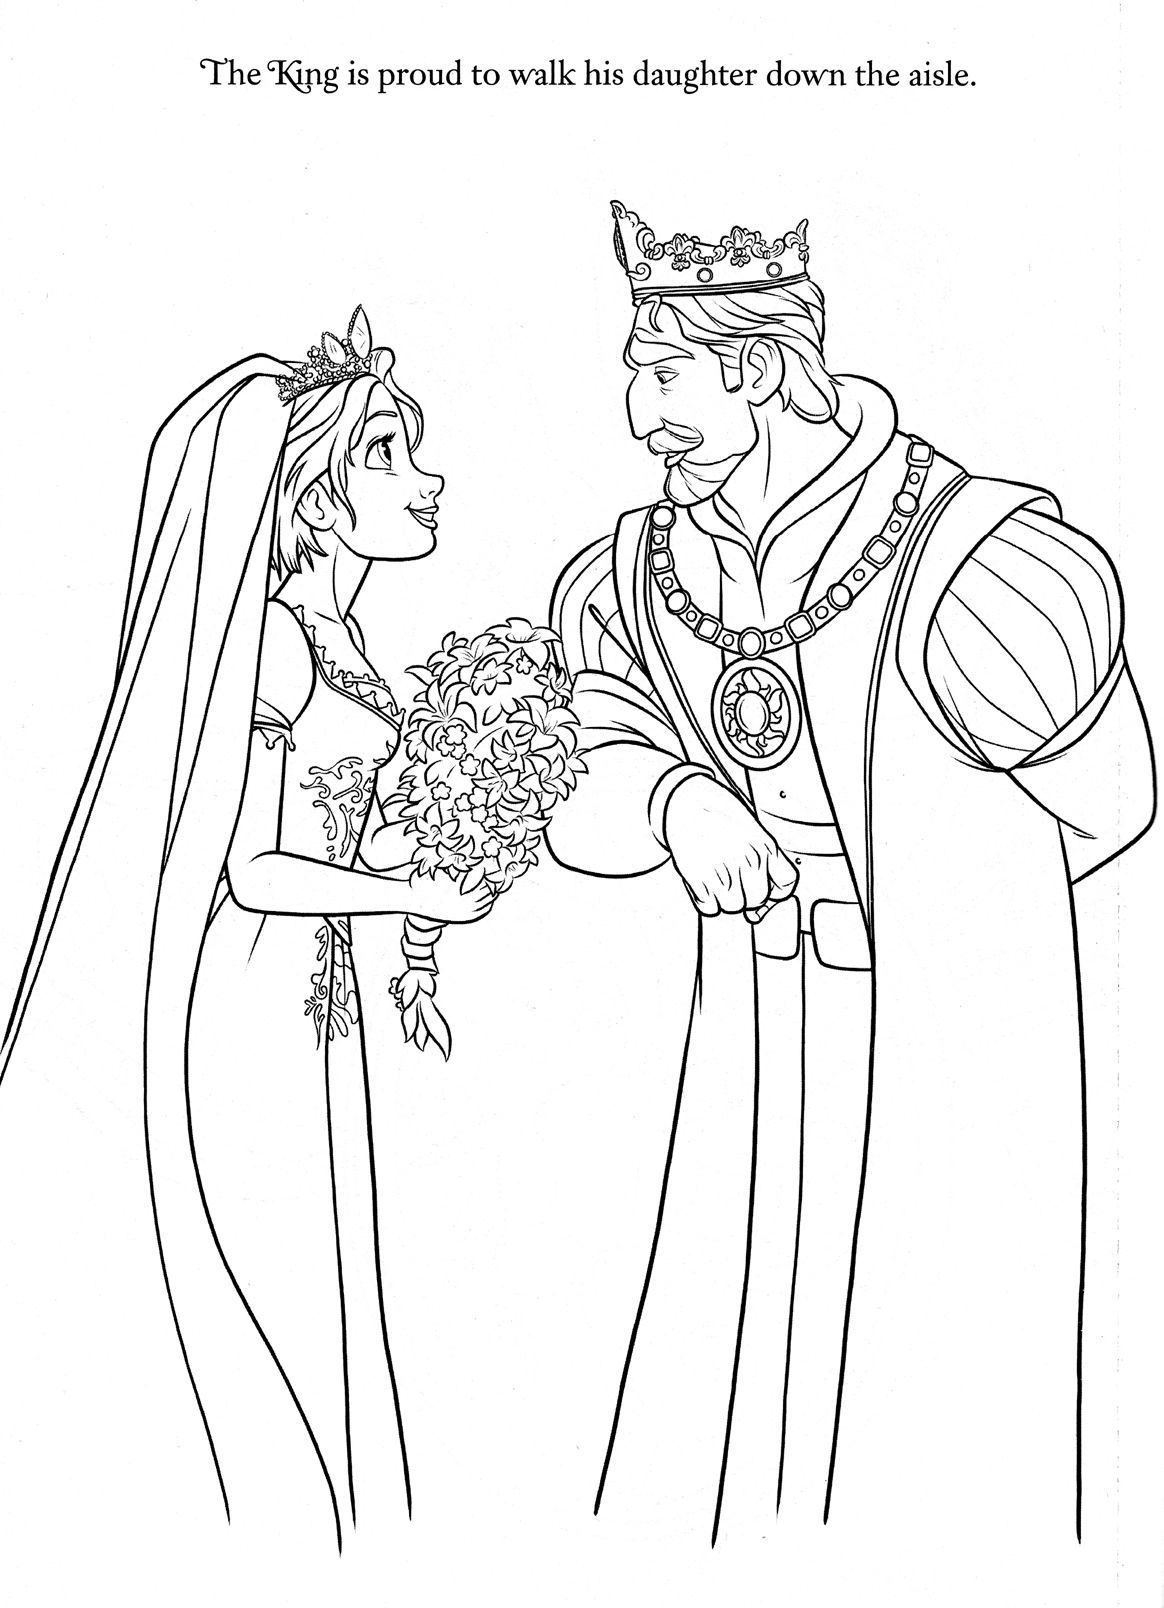 Walt Disney Ausmalbilder Rapunzel Neu Verföhnt : Rapunzel Wedding Coloring Papges 10 Months Ago With 36 Notes